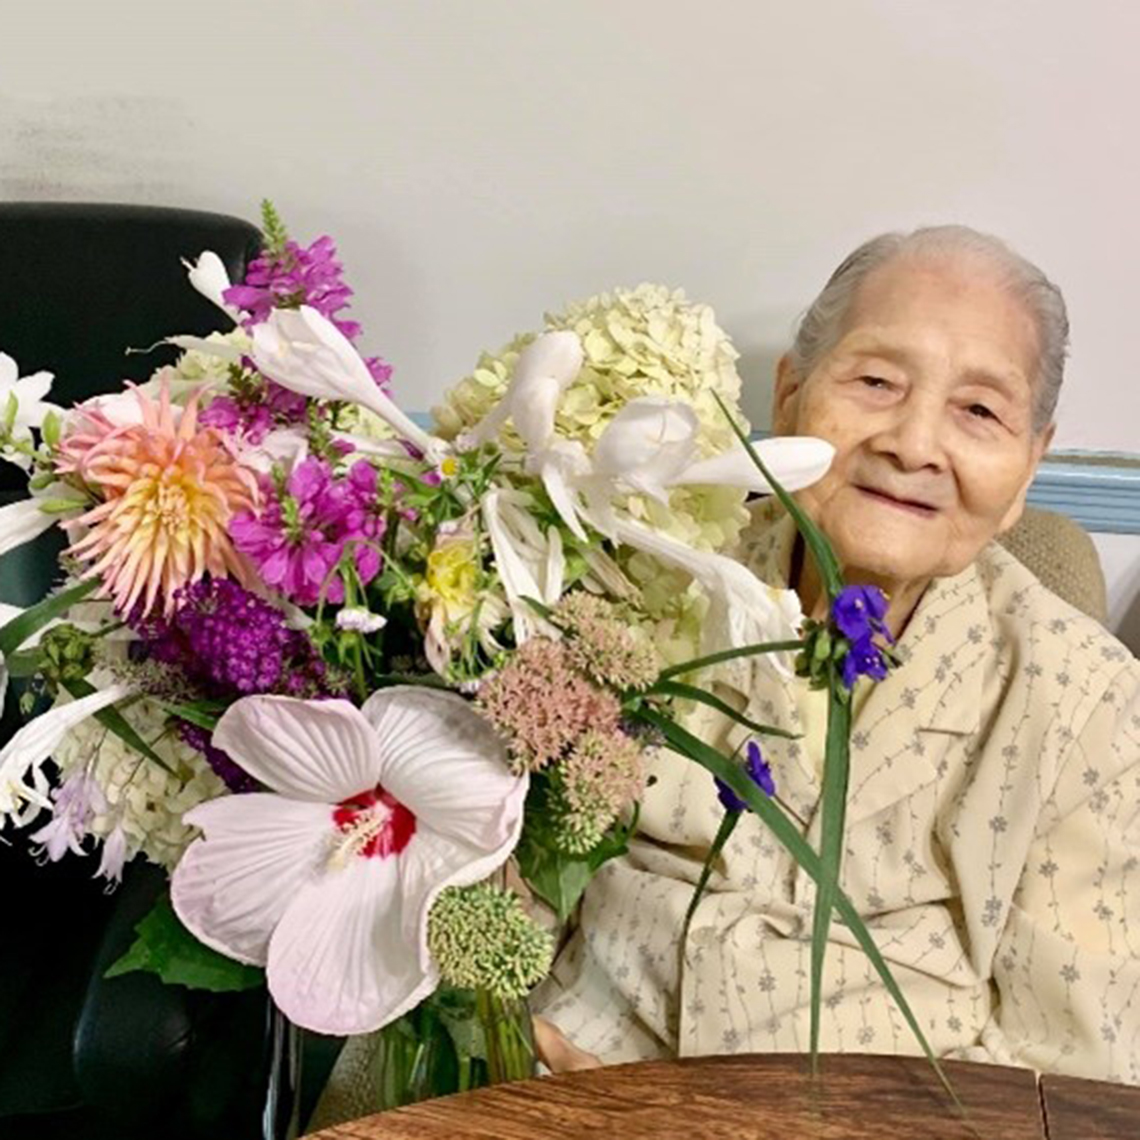 hoa feng then with a bouquet of flowers